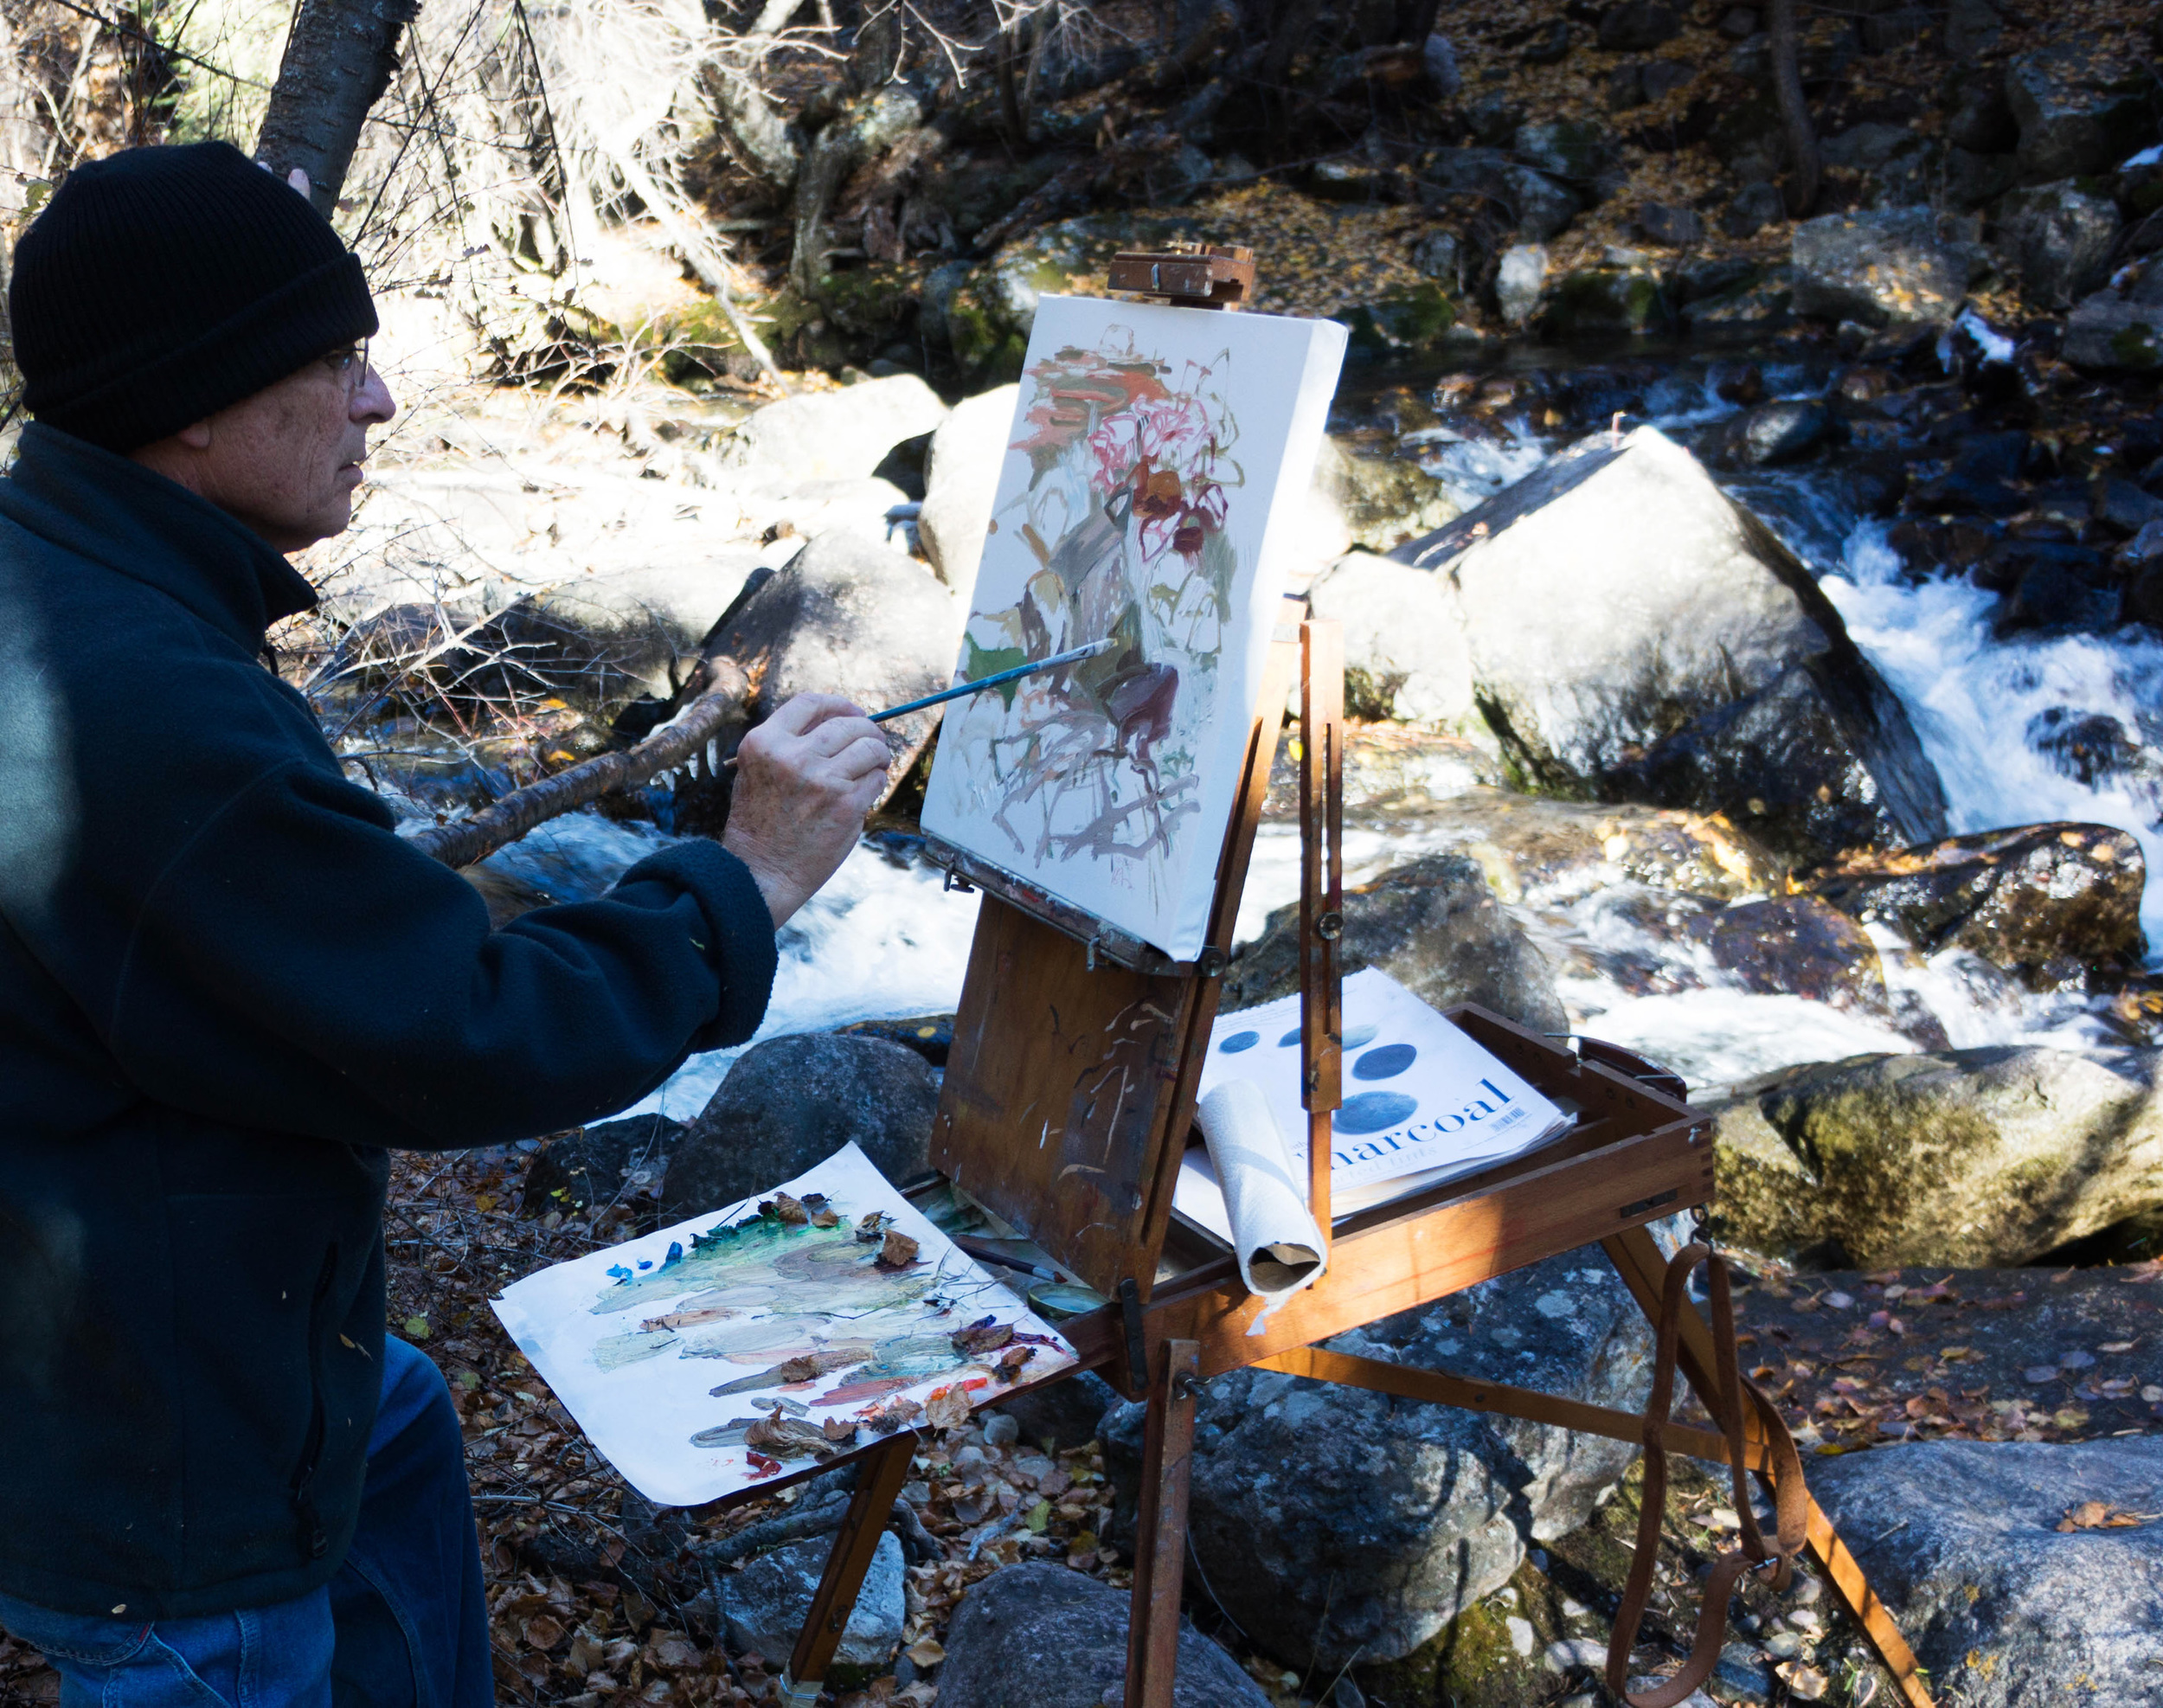 site-10.23.13 LR-PT paints N. Crestone Creek 16x16.jpg